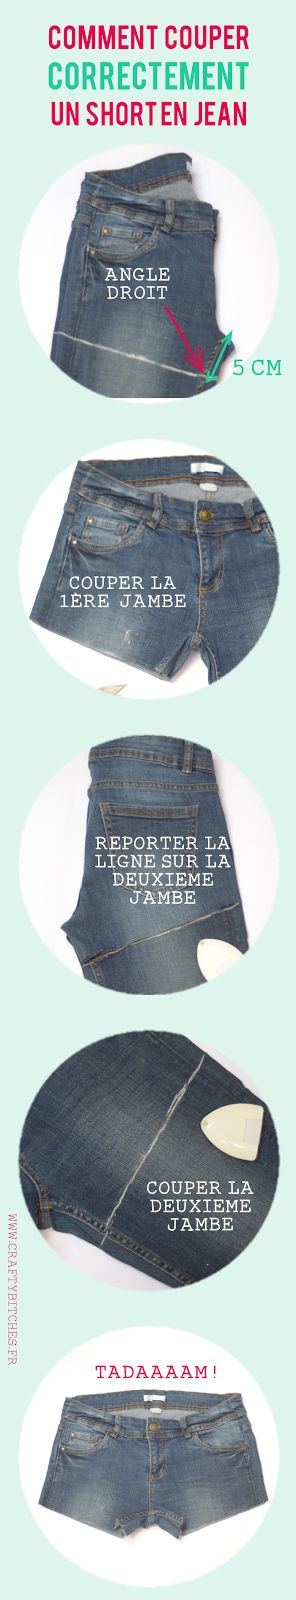 Comment couper un short en jean (sans faire de massacre)